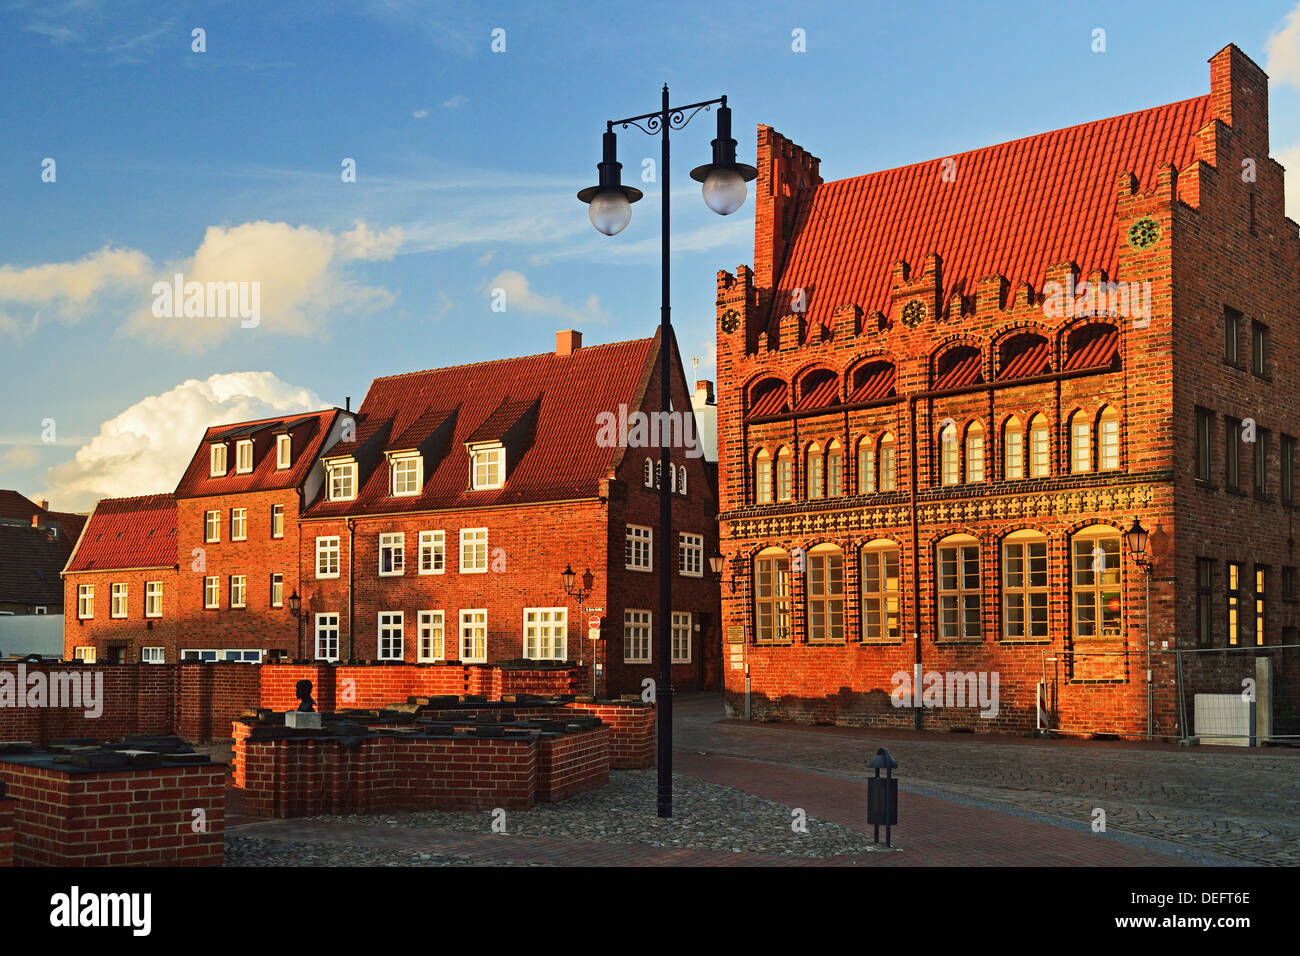 Evening scene in the old town of Wismar, UNESCO World Heritage Site, Mecklenburg-Vorpommern, Germany, Baltic Sea, Europe - Stock Image